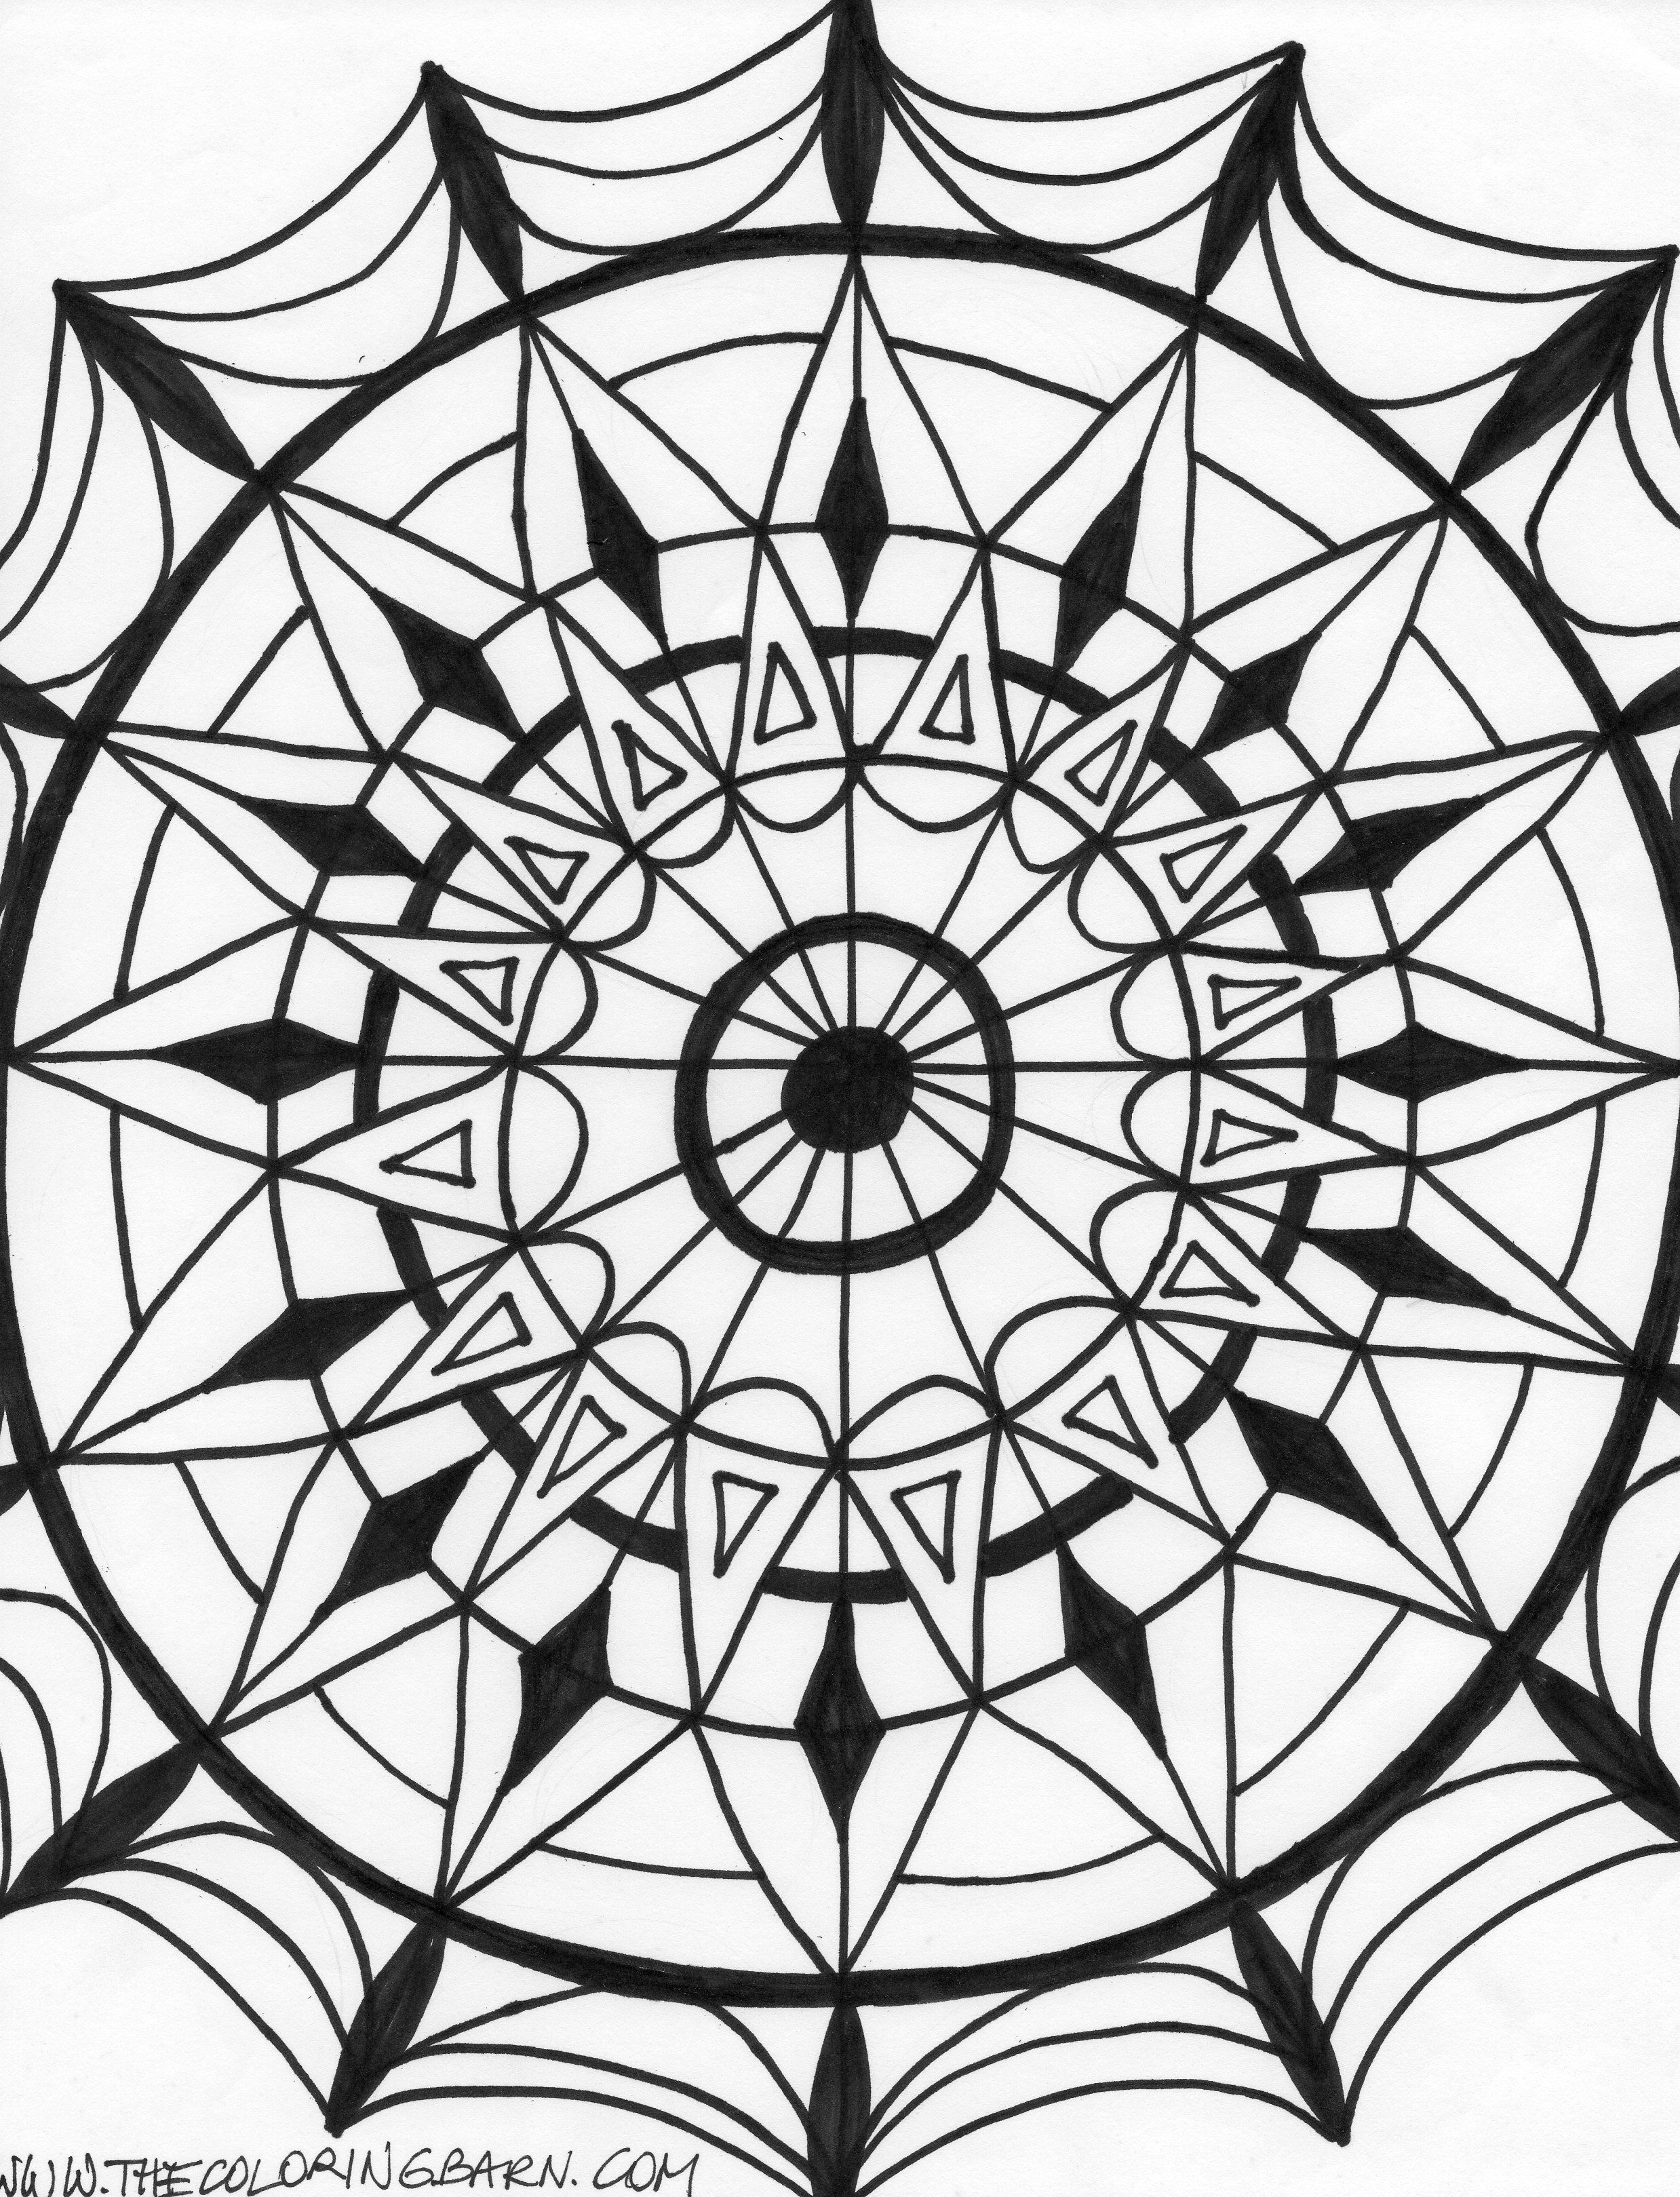 Printable Kaleidoscope Patterns | Kaleidoscope Coloring Pages ...